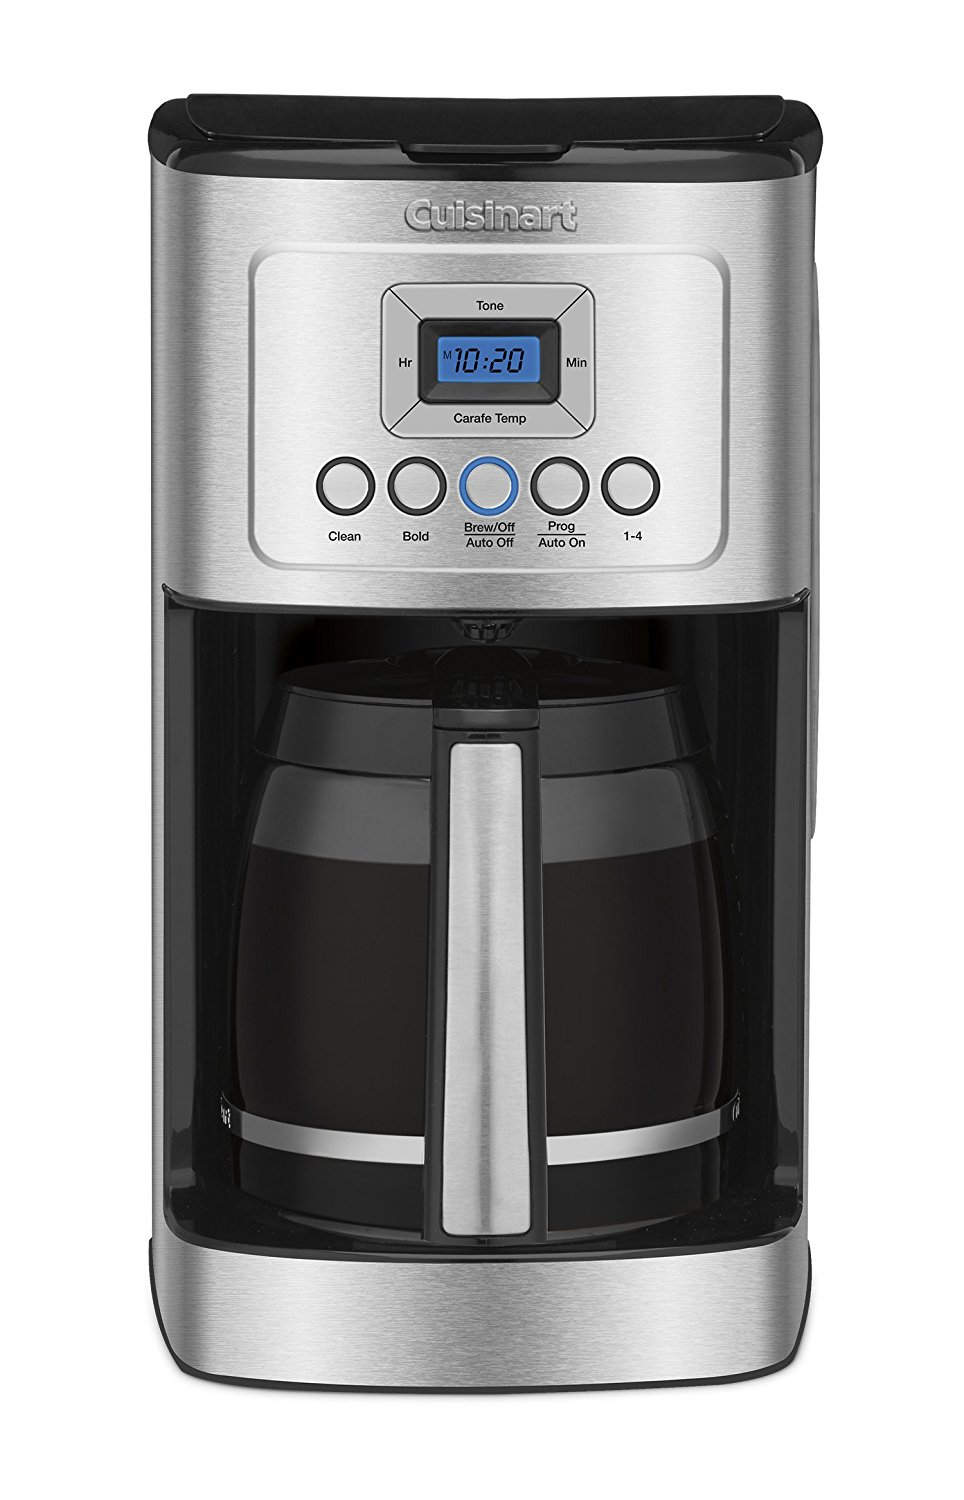 Best Electric Coffee Maker These Are The Best Electric Coffee Makers The Wise Spoon